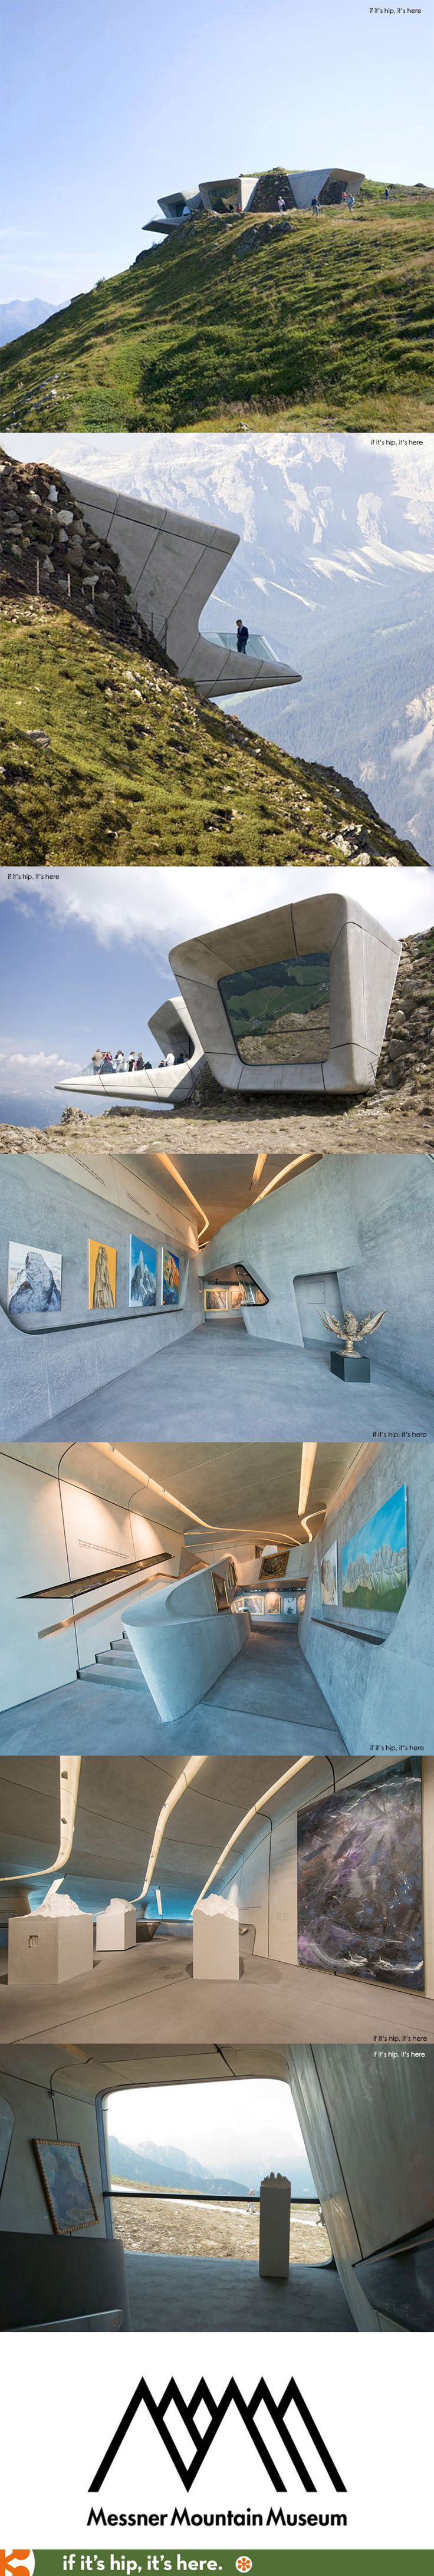 First Look At The New Messner Mountain Museum by Zaha Hadid - http://www.ifitshipitshere.com/messner-mountain-museum-by-zaha-hadid/